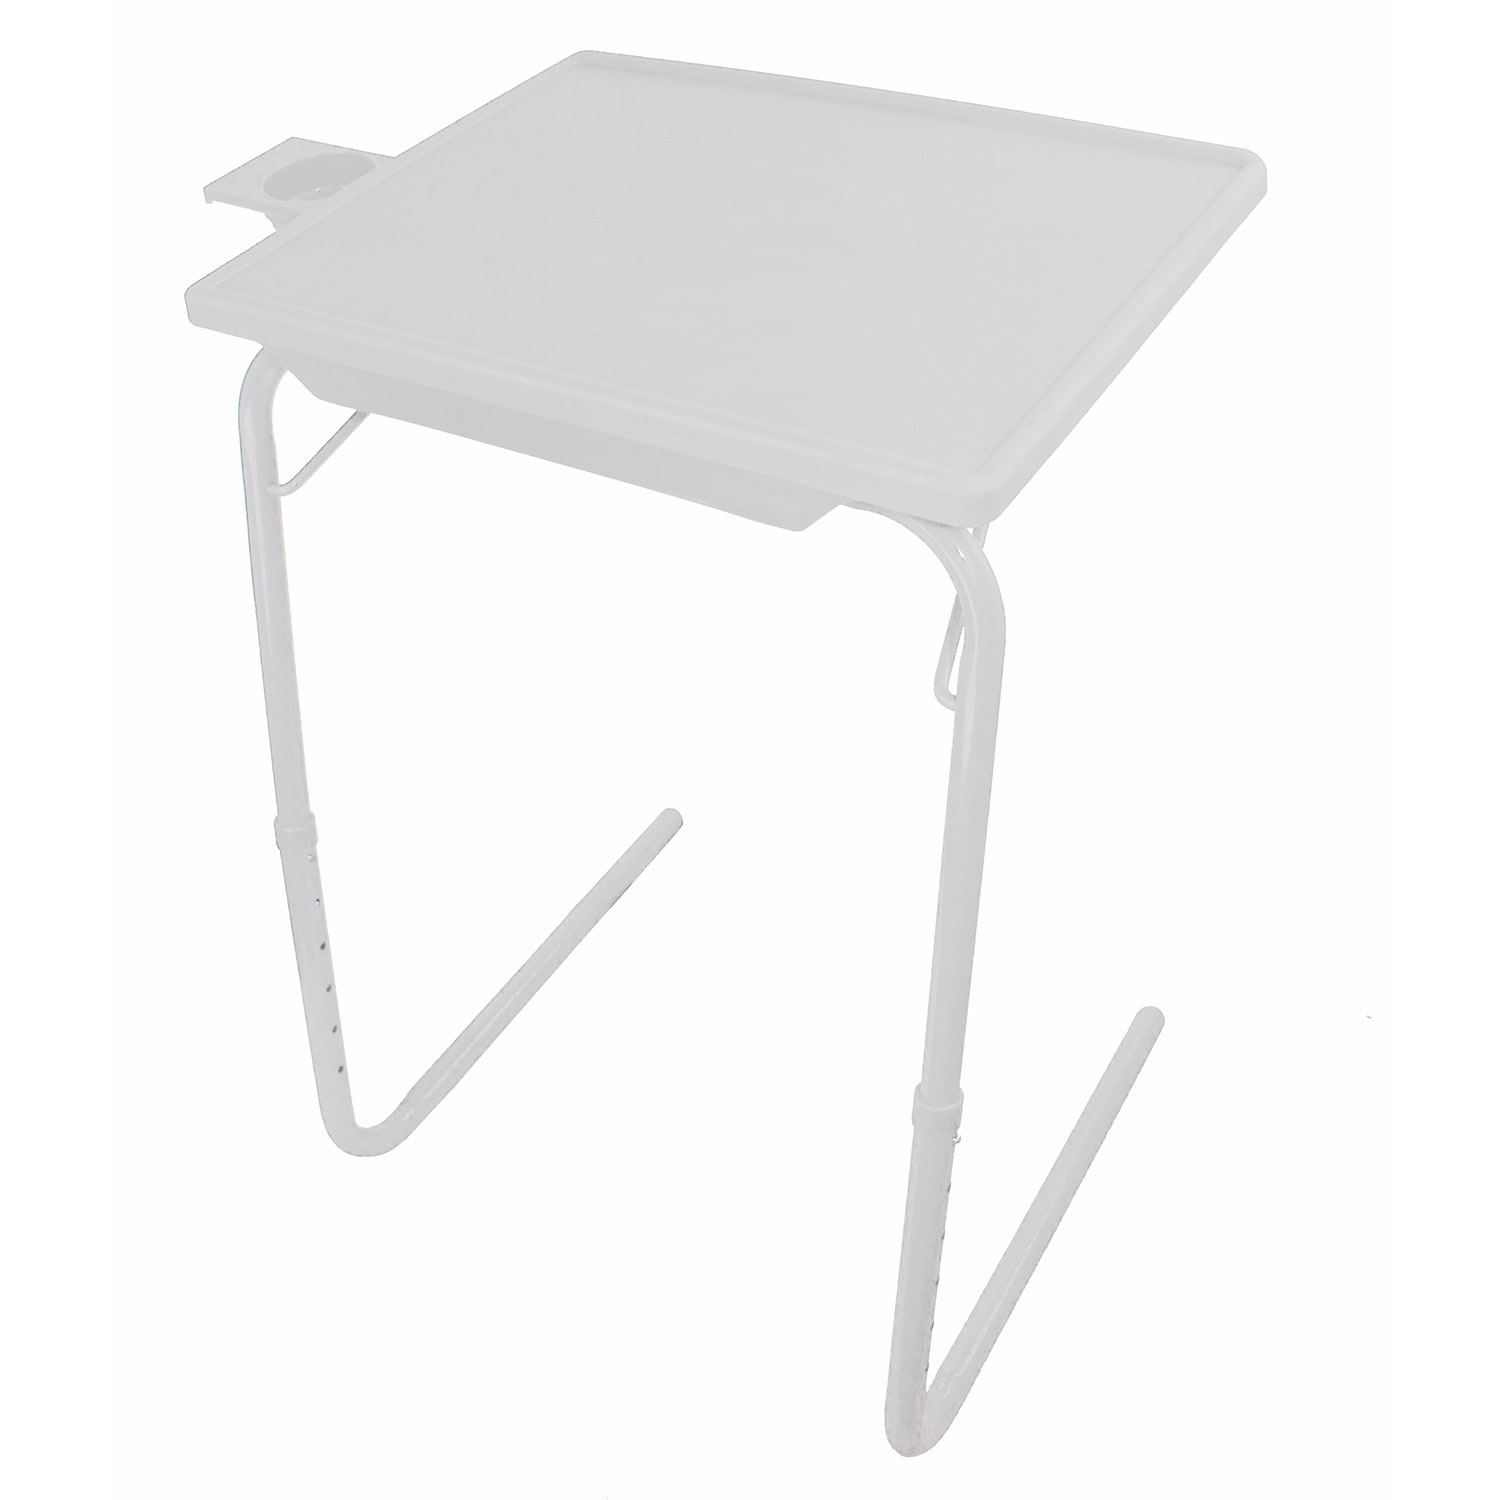 Shop Portable Foldable Tv Tray Table Laptop Eating Stand W